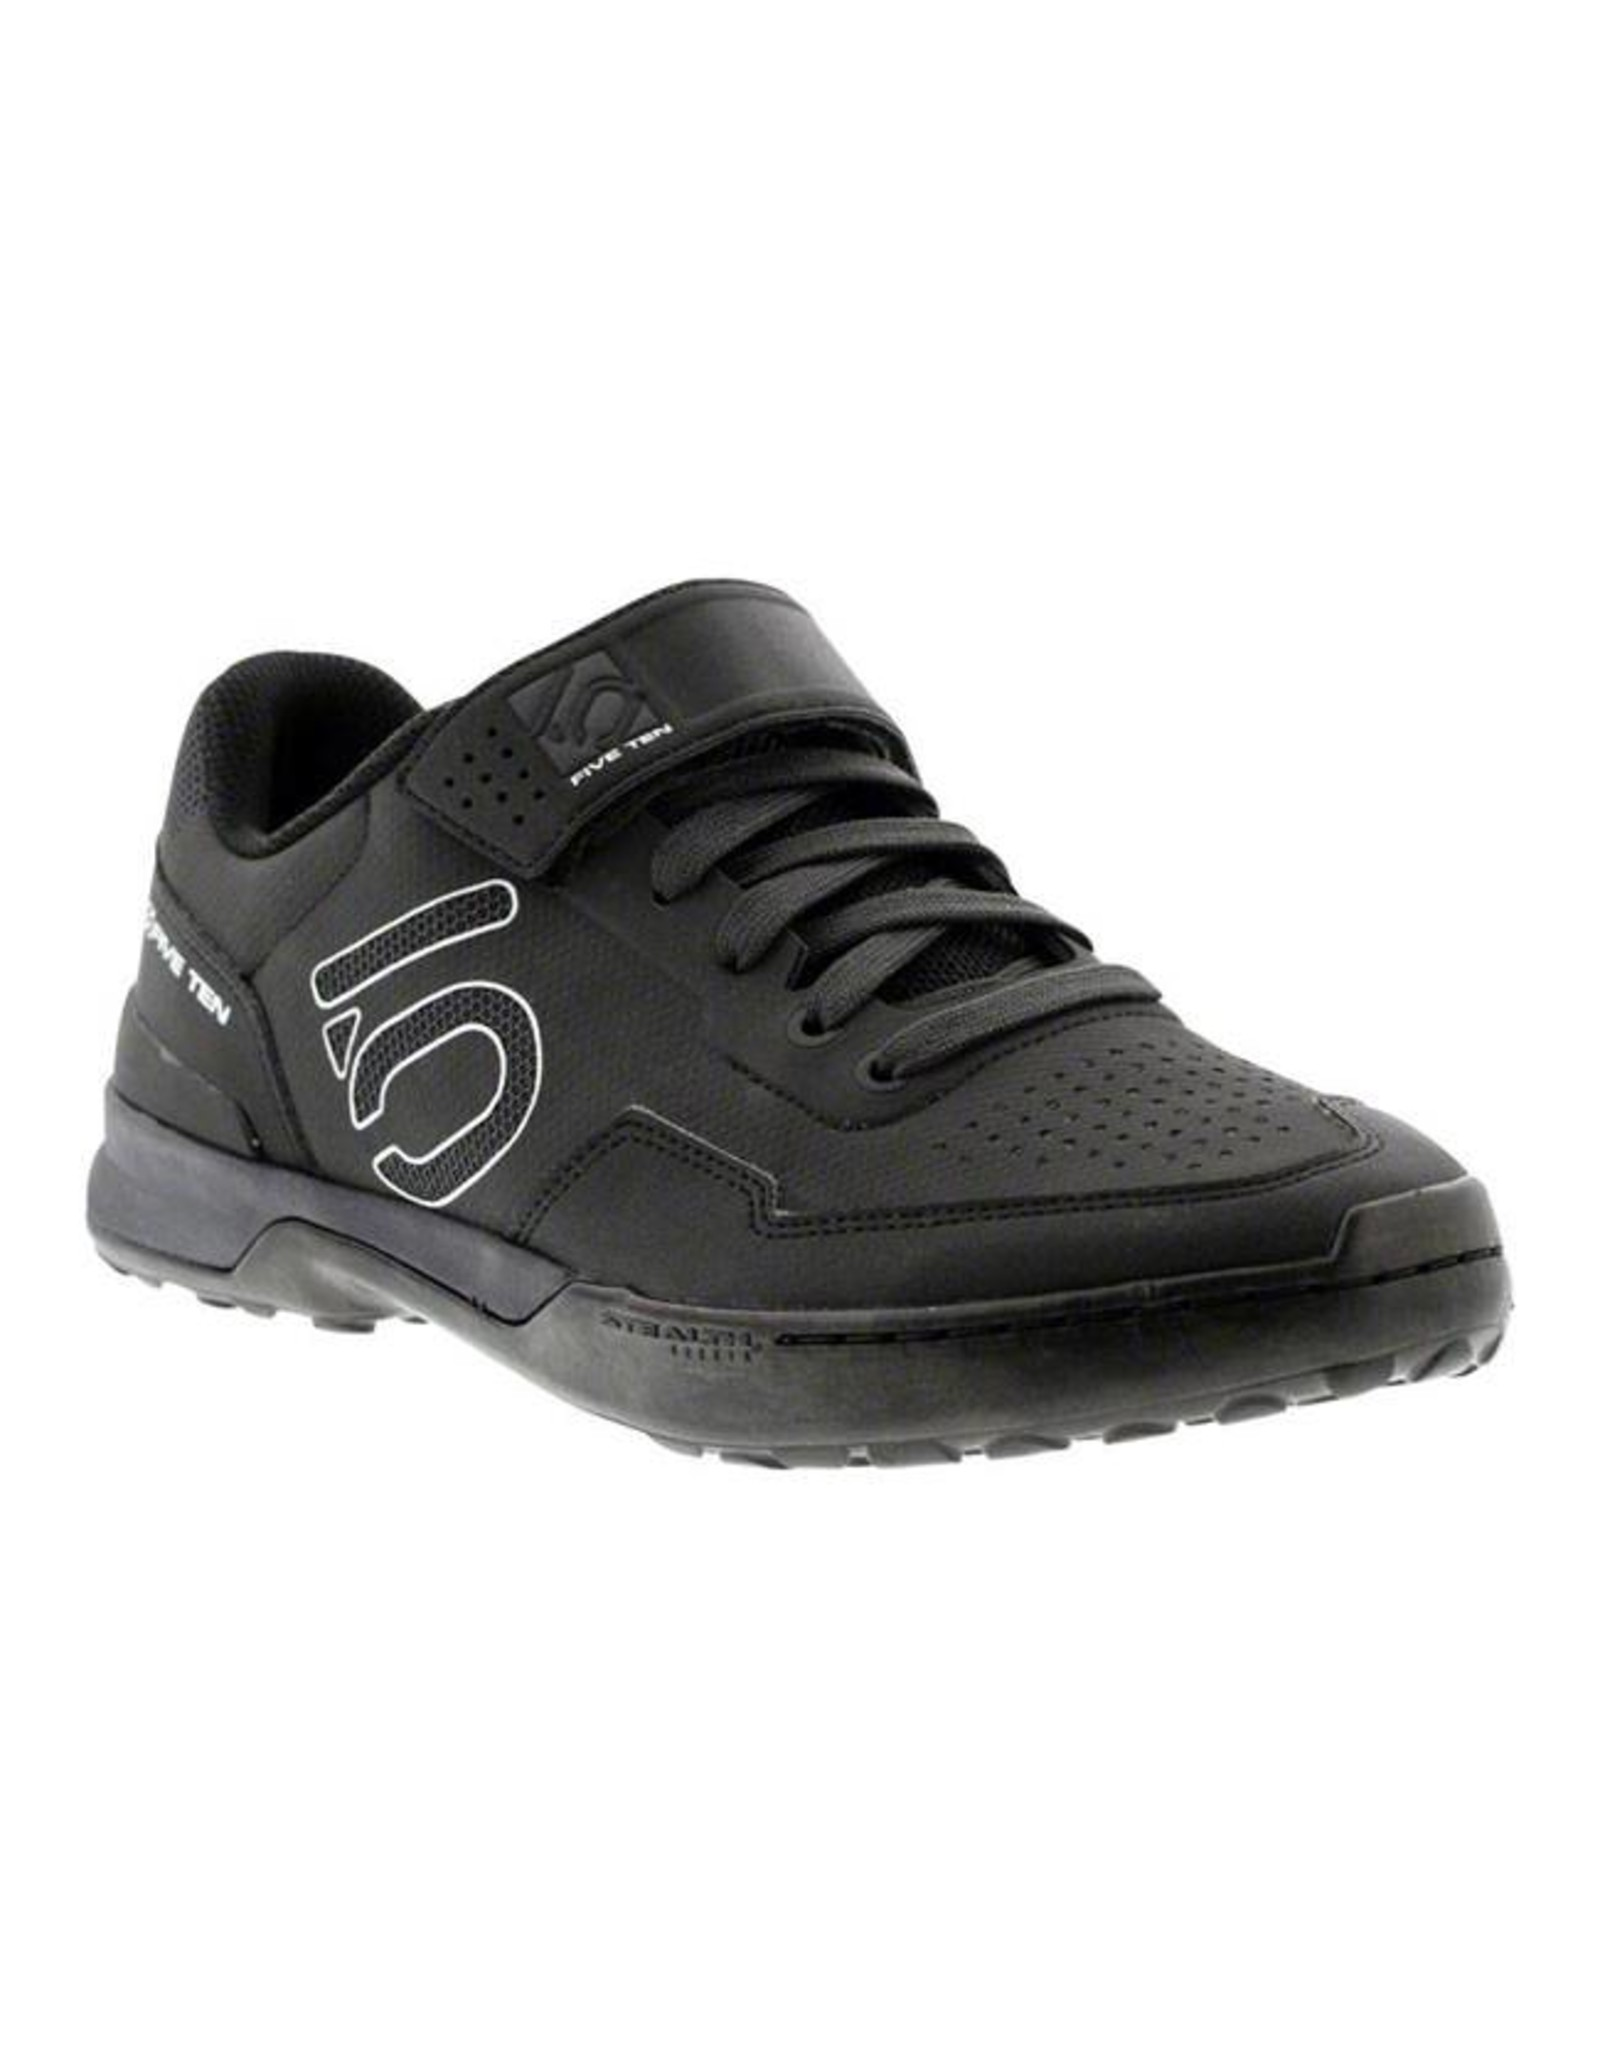 Five Ten Five Ten Kestrel Lace Men's Clipless Shoe: Black Carbon 9.5